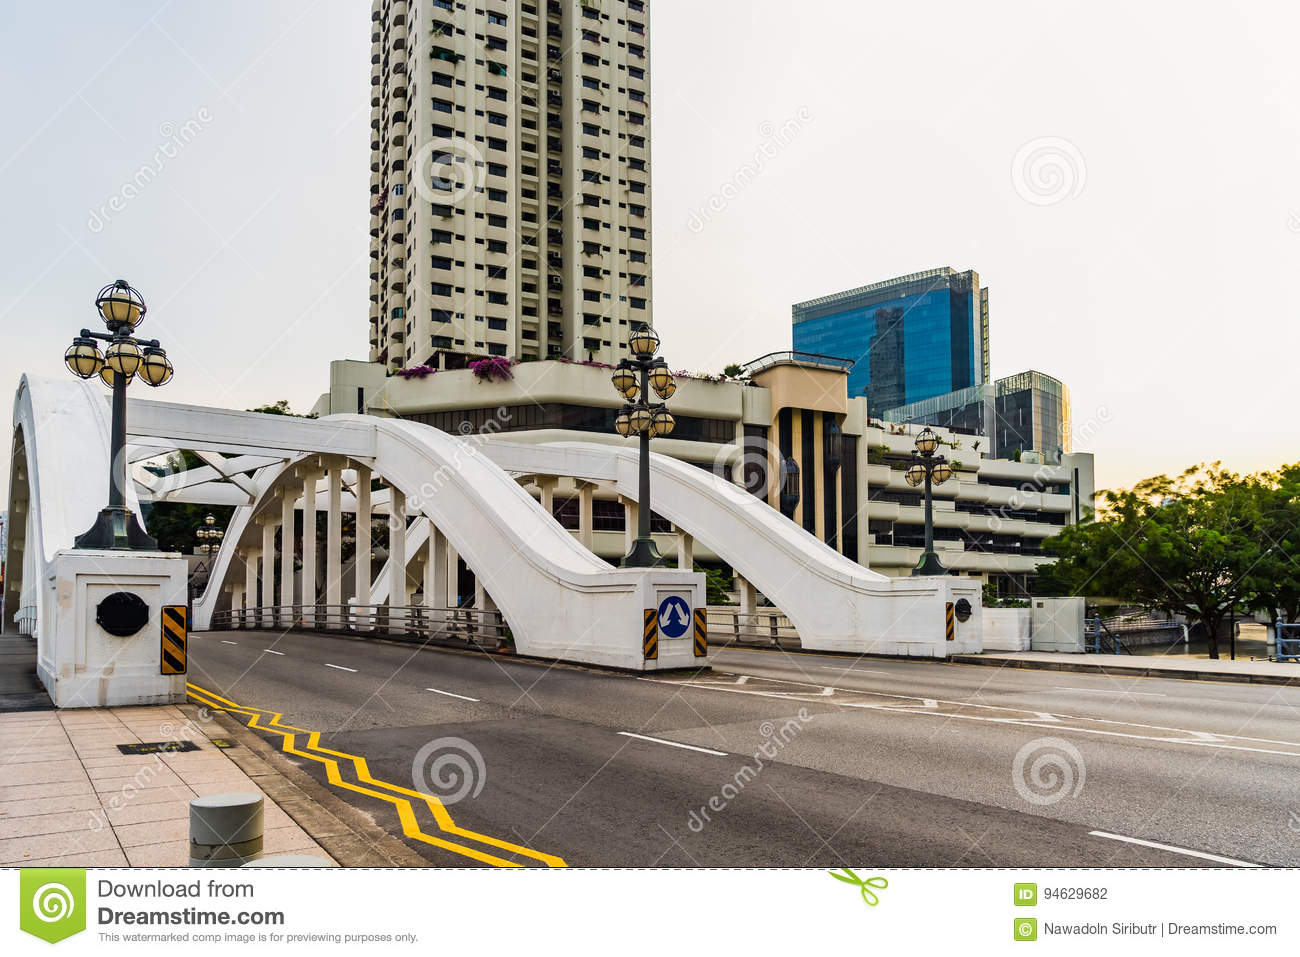 Elgin Bridge Singapore en lege weg in zonnige dag